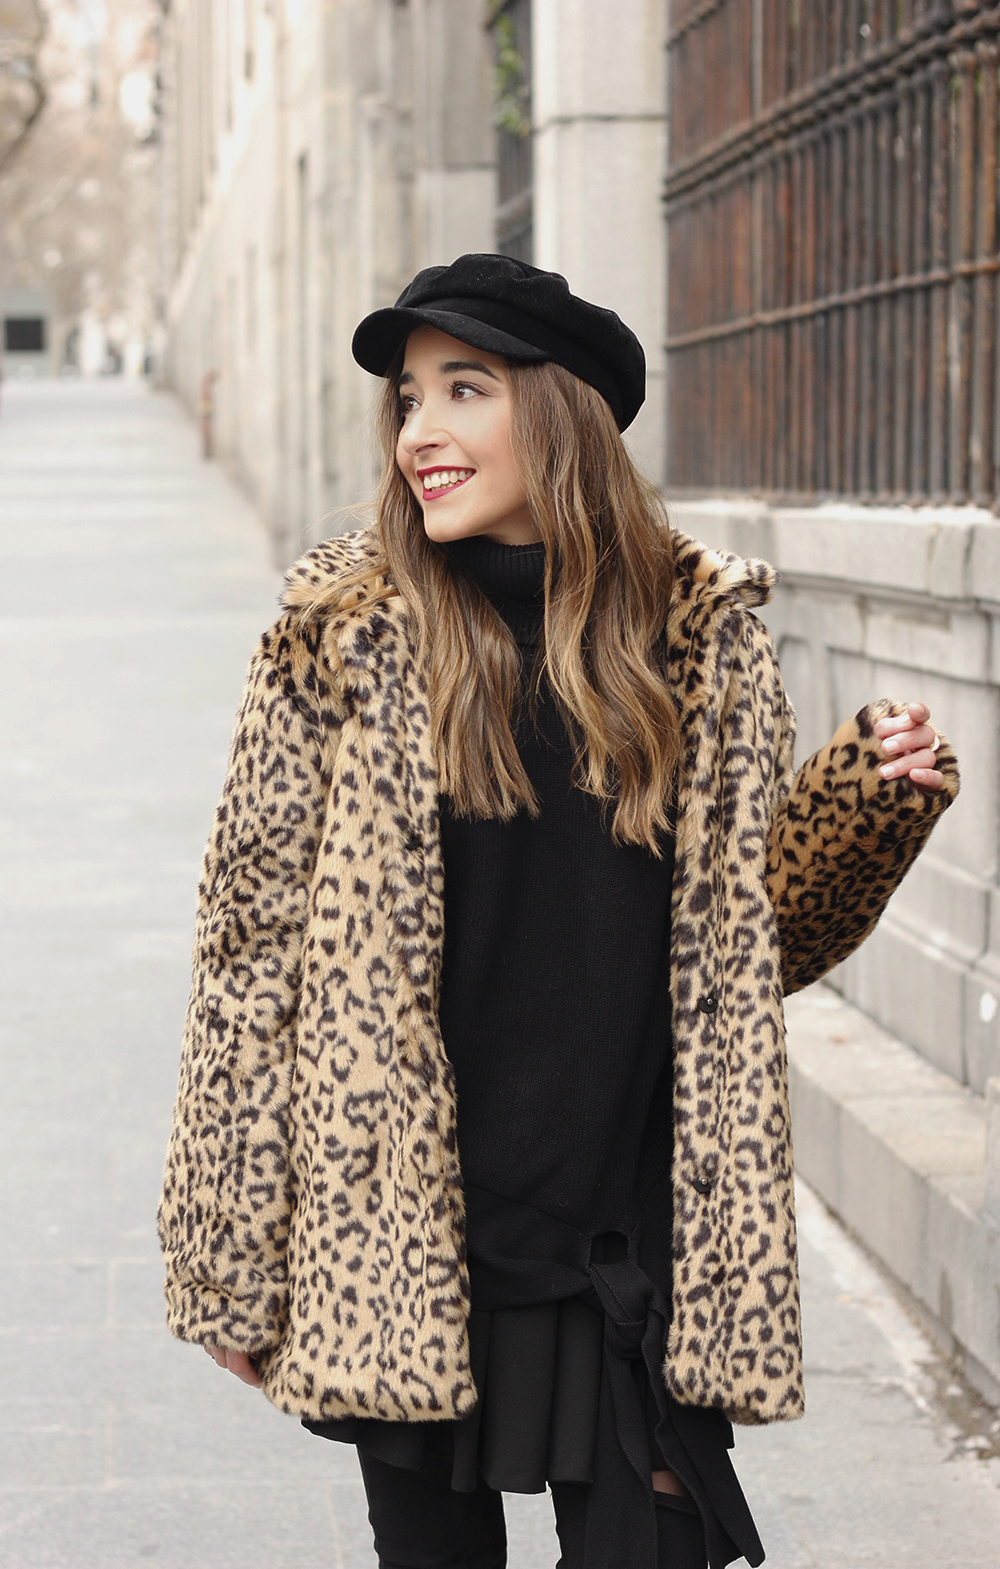 leopard coat black outfit over the knee boats givenchy black cap winter outfit12